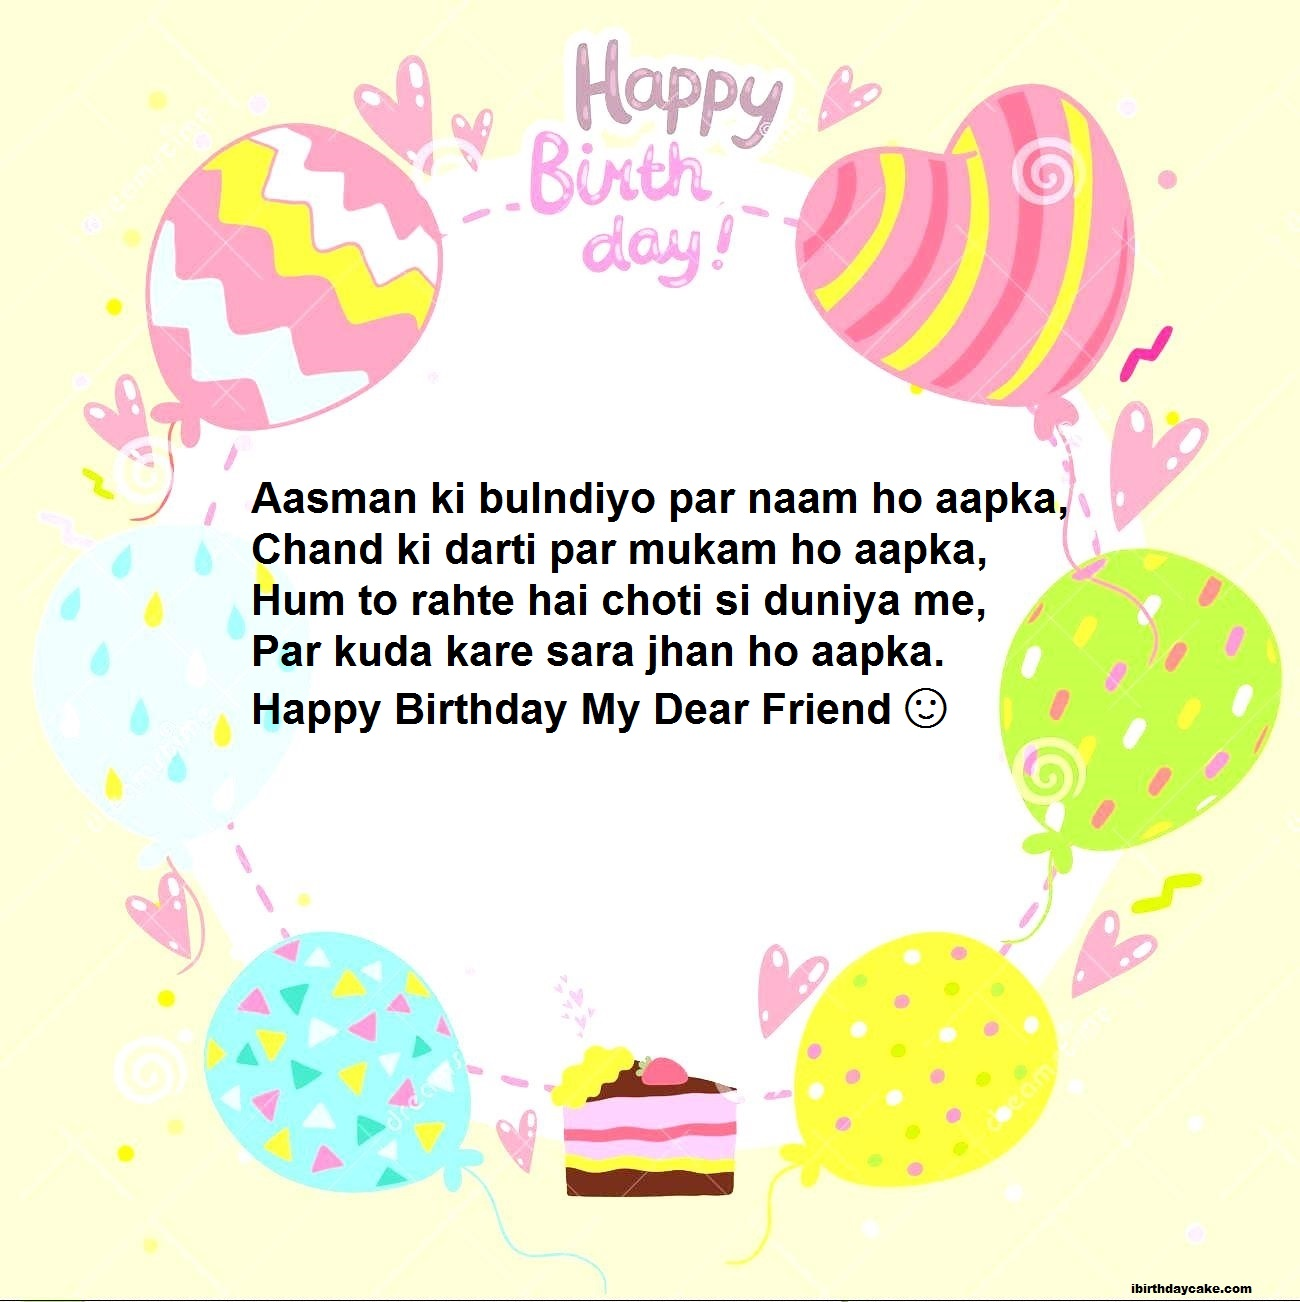 100+ Happy Birthday SMS Wishes in Hindi & English (2019